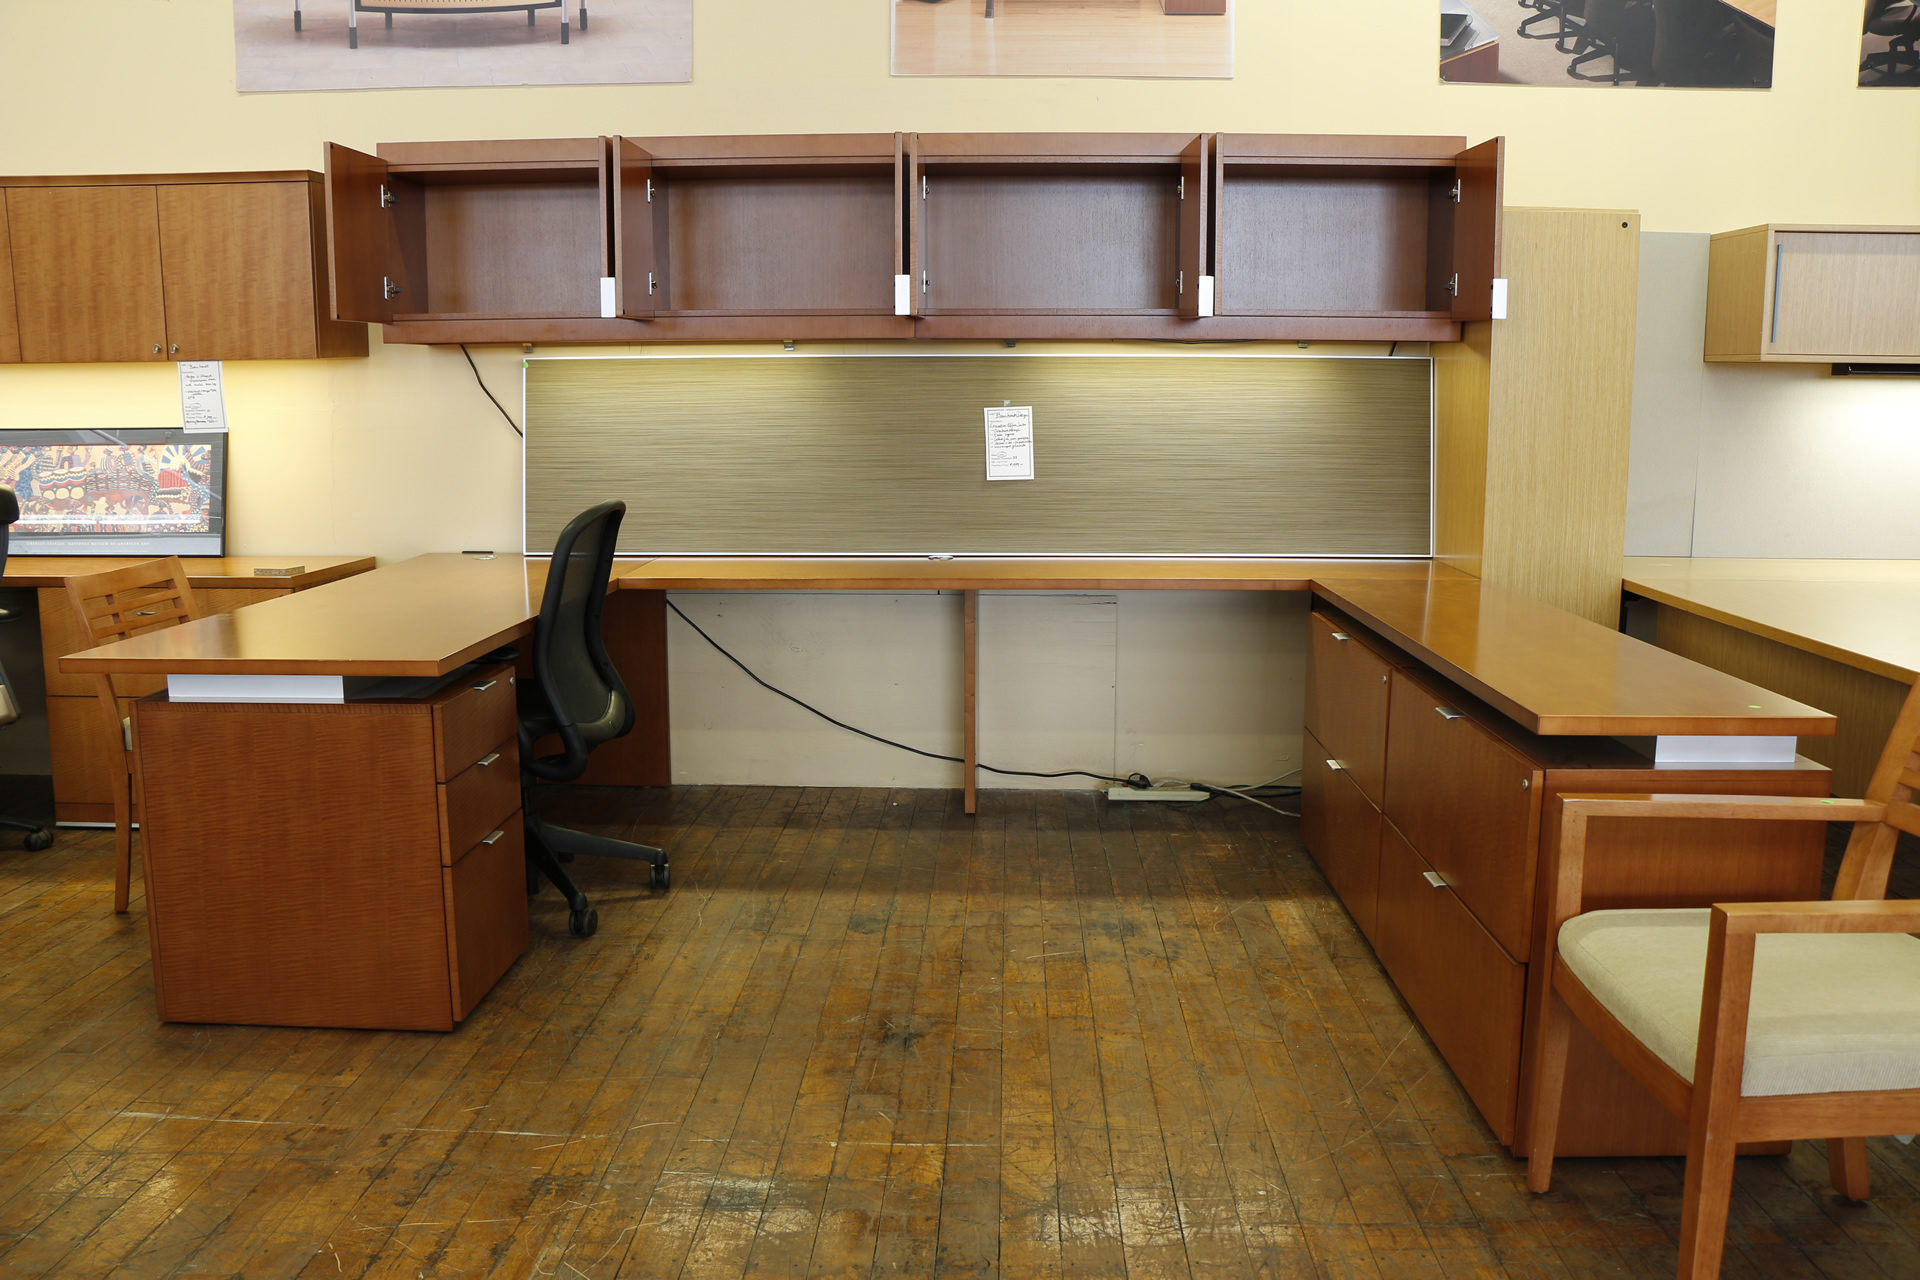 peartreeofficefurniture_peartreeofficefurniture_mg_4176.jpg